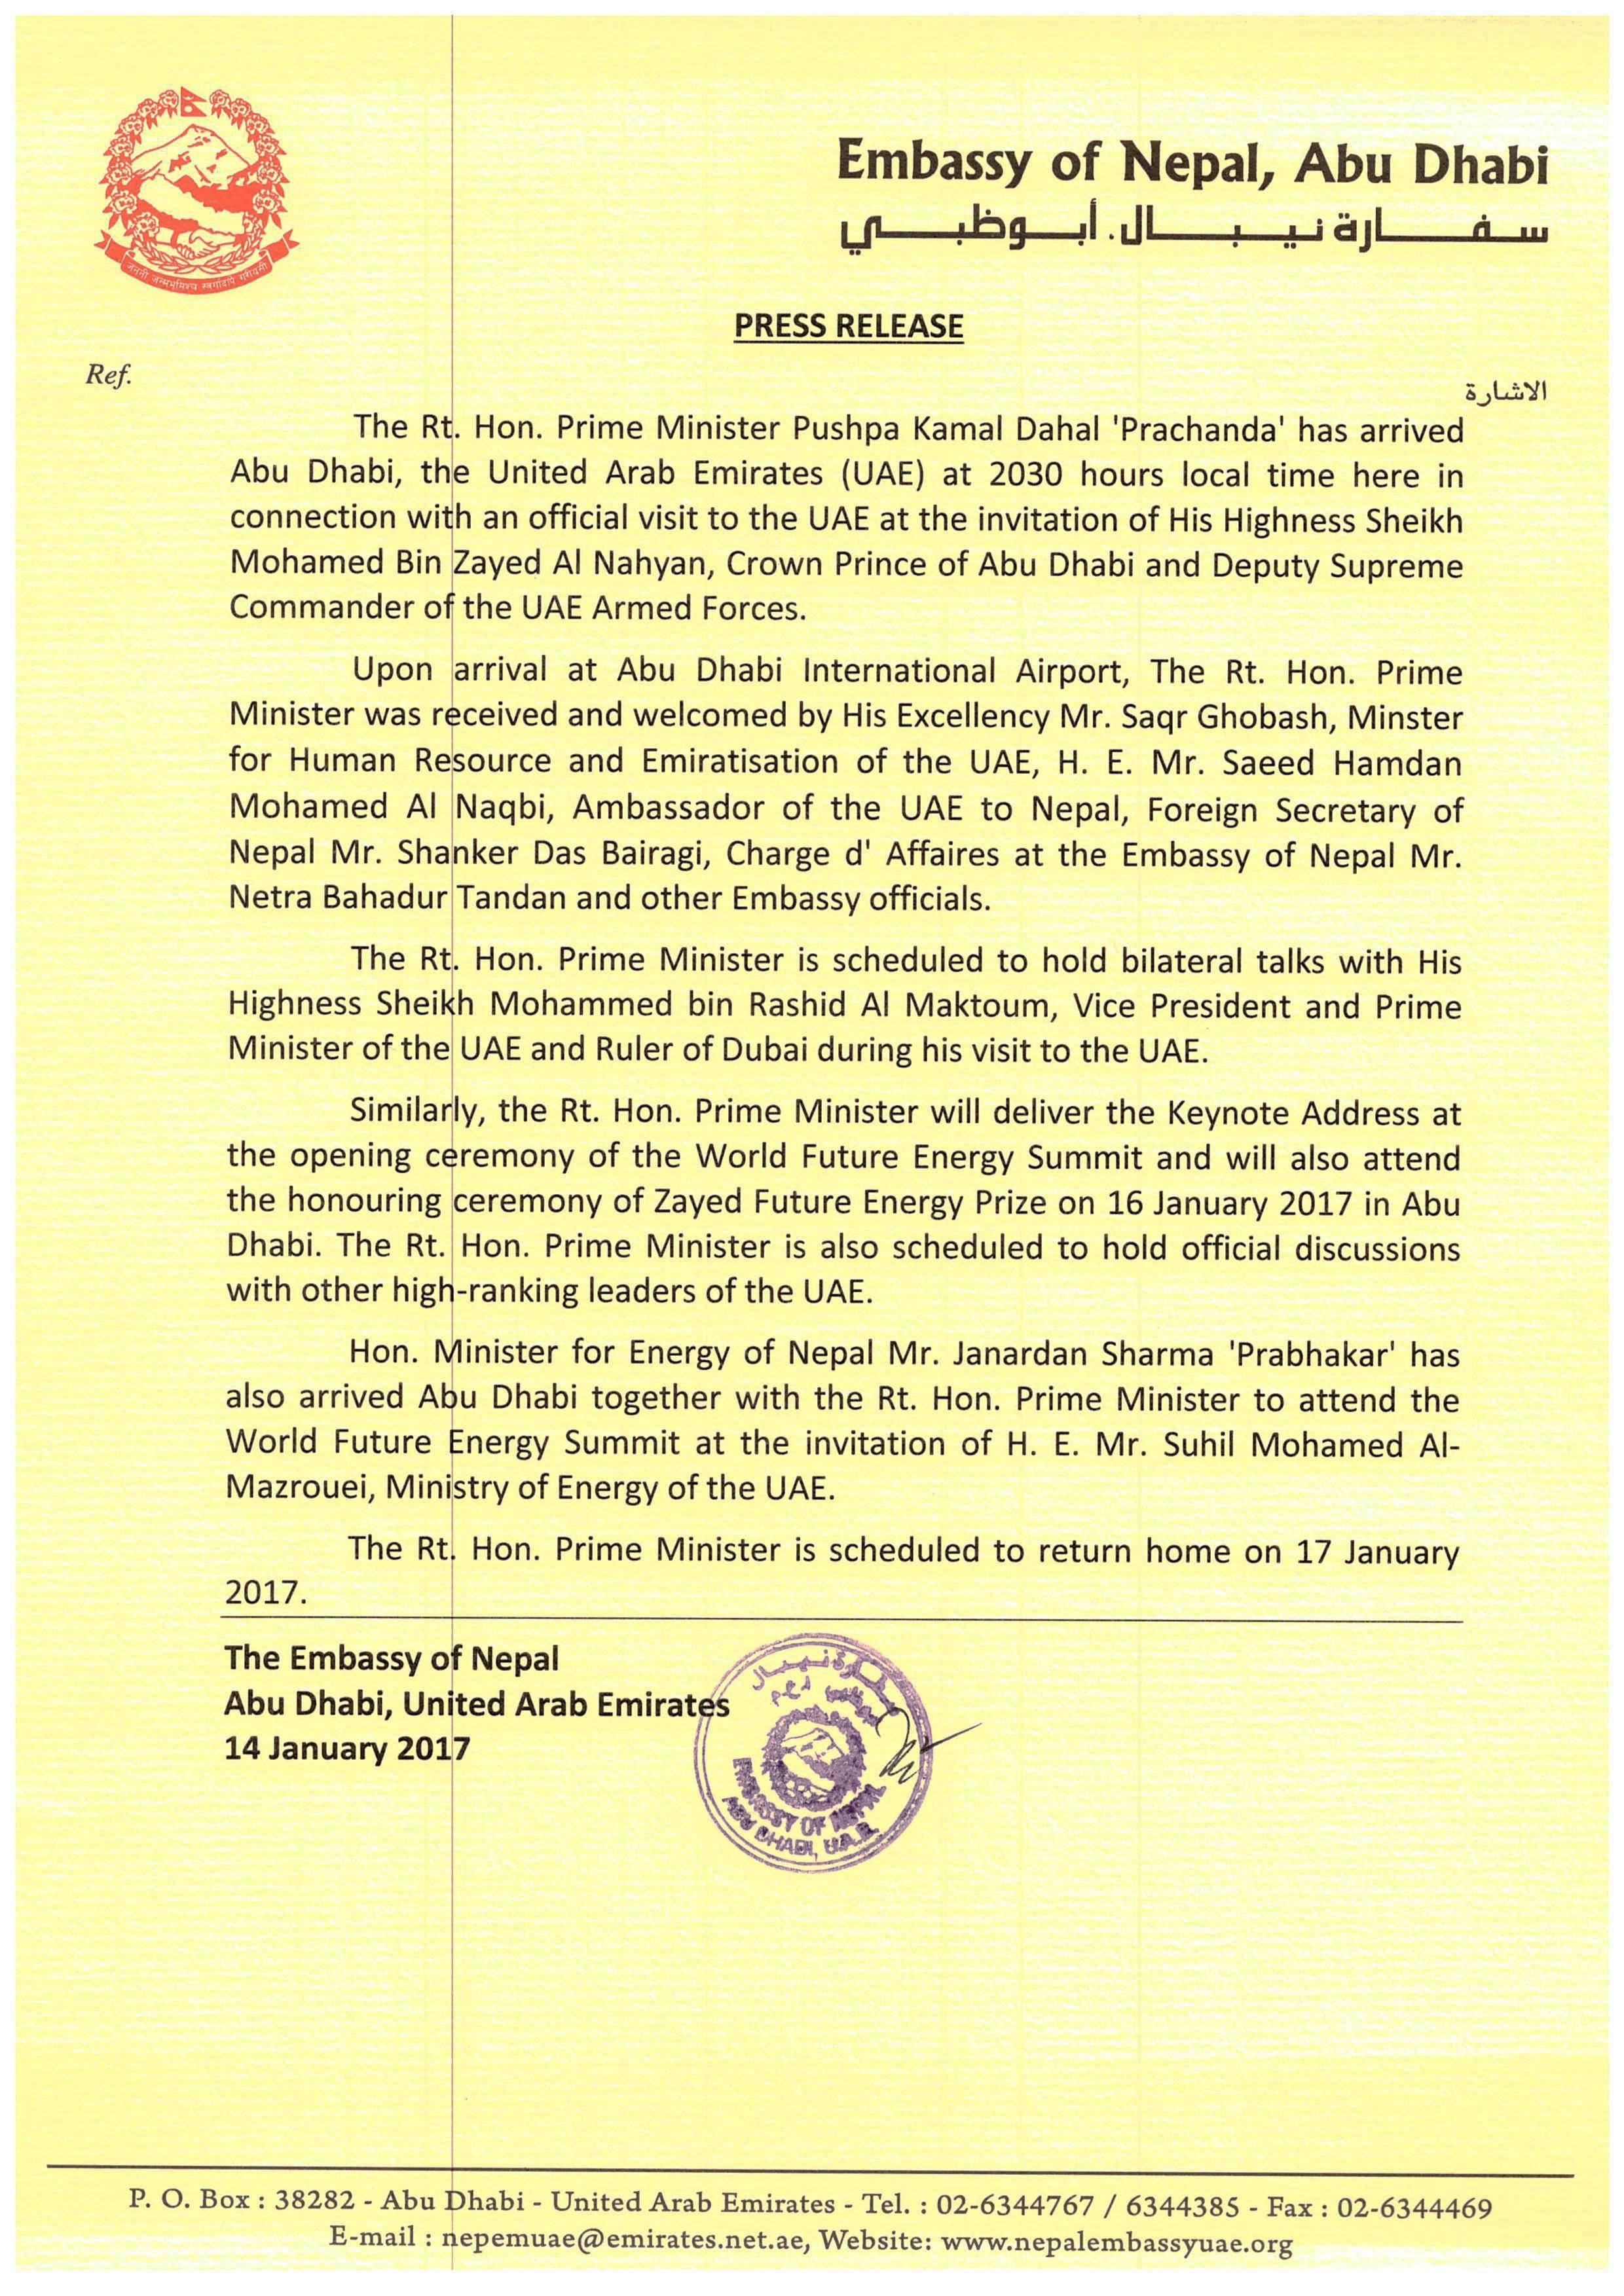 Press Release issued by Embassy of Nepal, Abu Dhabi regarding the